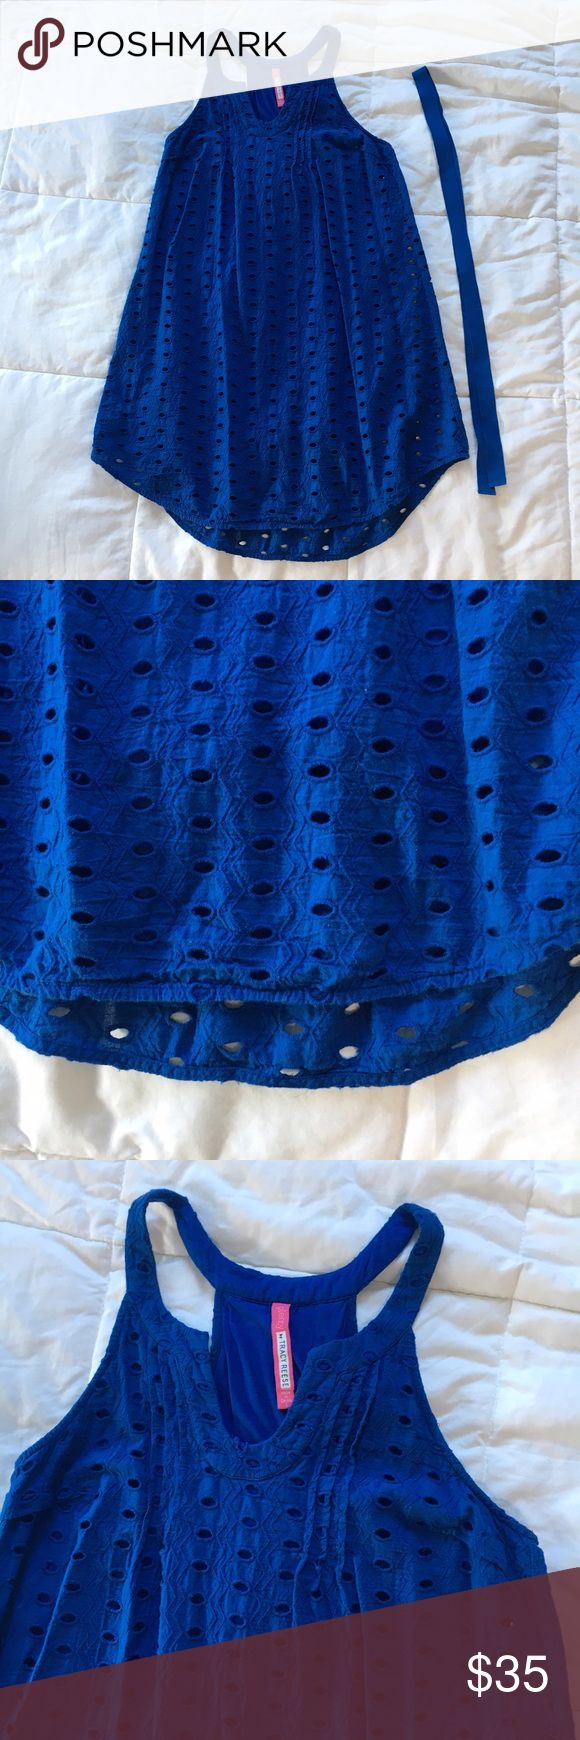 SALE❗️Plenty By Tracy Reese Blue Crochet Sundress Bright true blue Sundress with allover Crochet holes and zig zag pattern. Dress is fully lined so you cannot see through holes. Has racerback style back with vertical pleating at neck. Front has small 'v' opening in front. Comes with grosgrain ribbon belt but can be worn with or without. Plenty by Tracy Reese Dresses